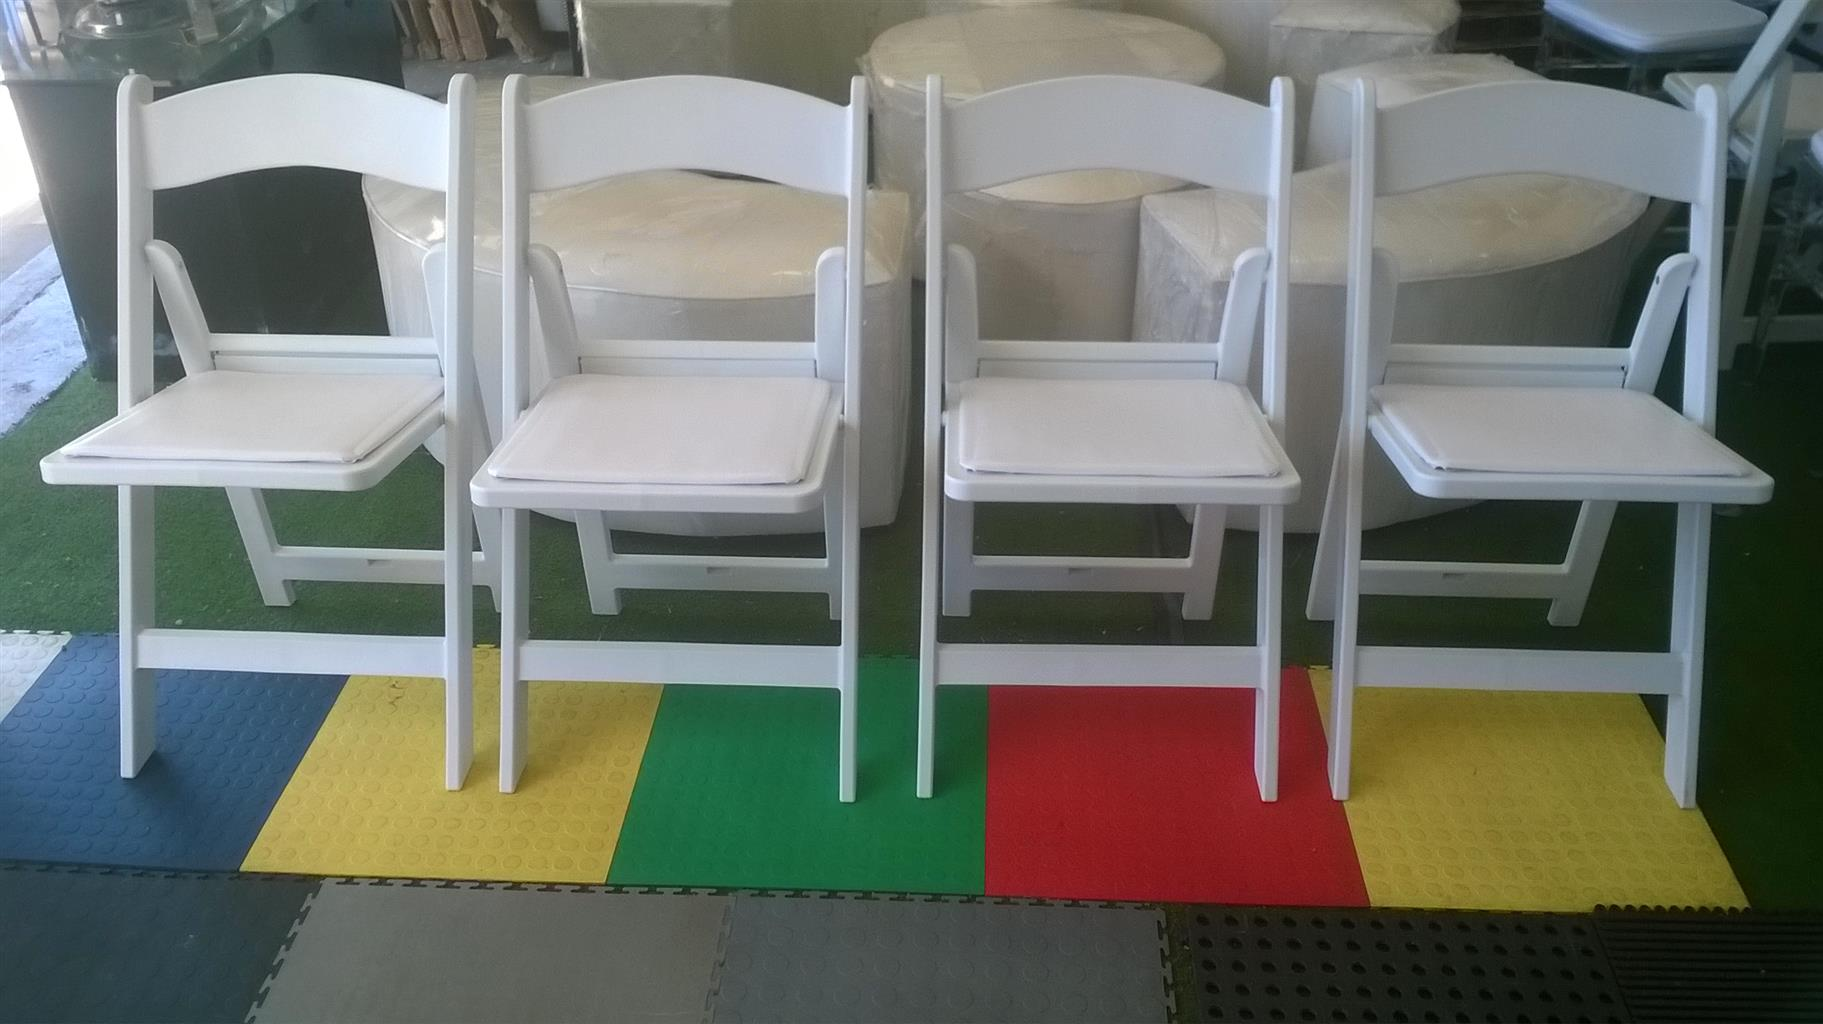 NEW WIMBLEDON CHAIRS FOR SALE AT WHOLESALE PRICES